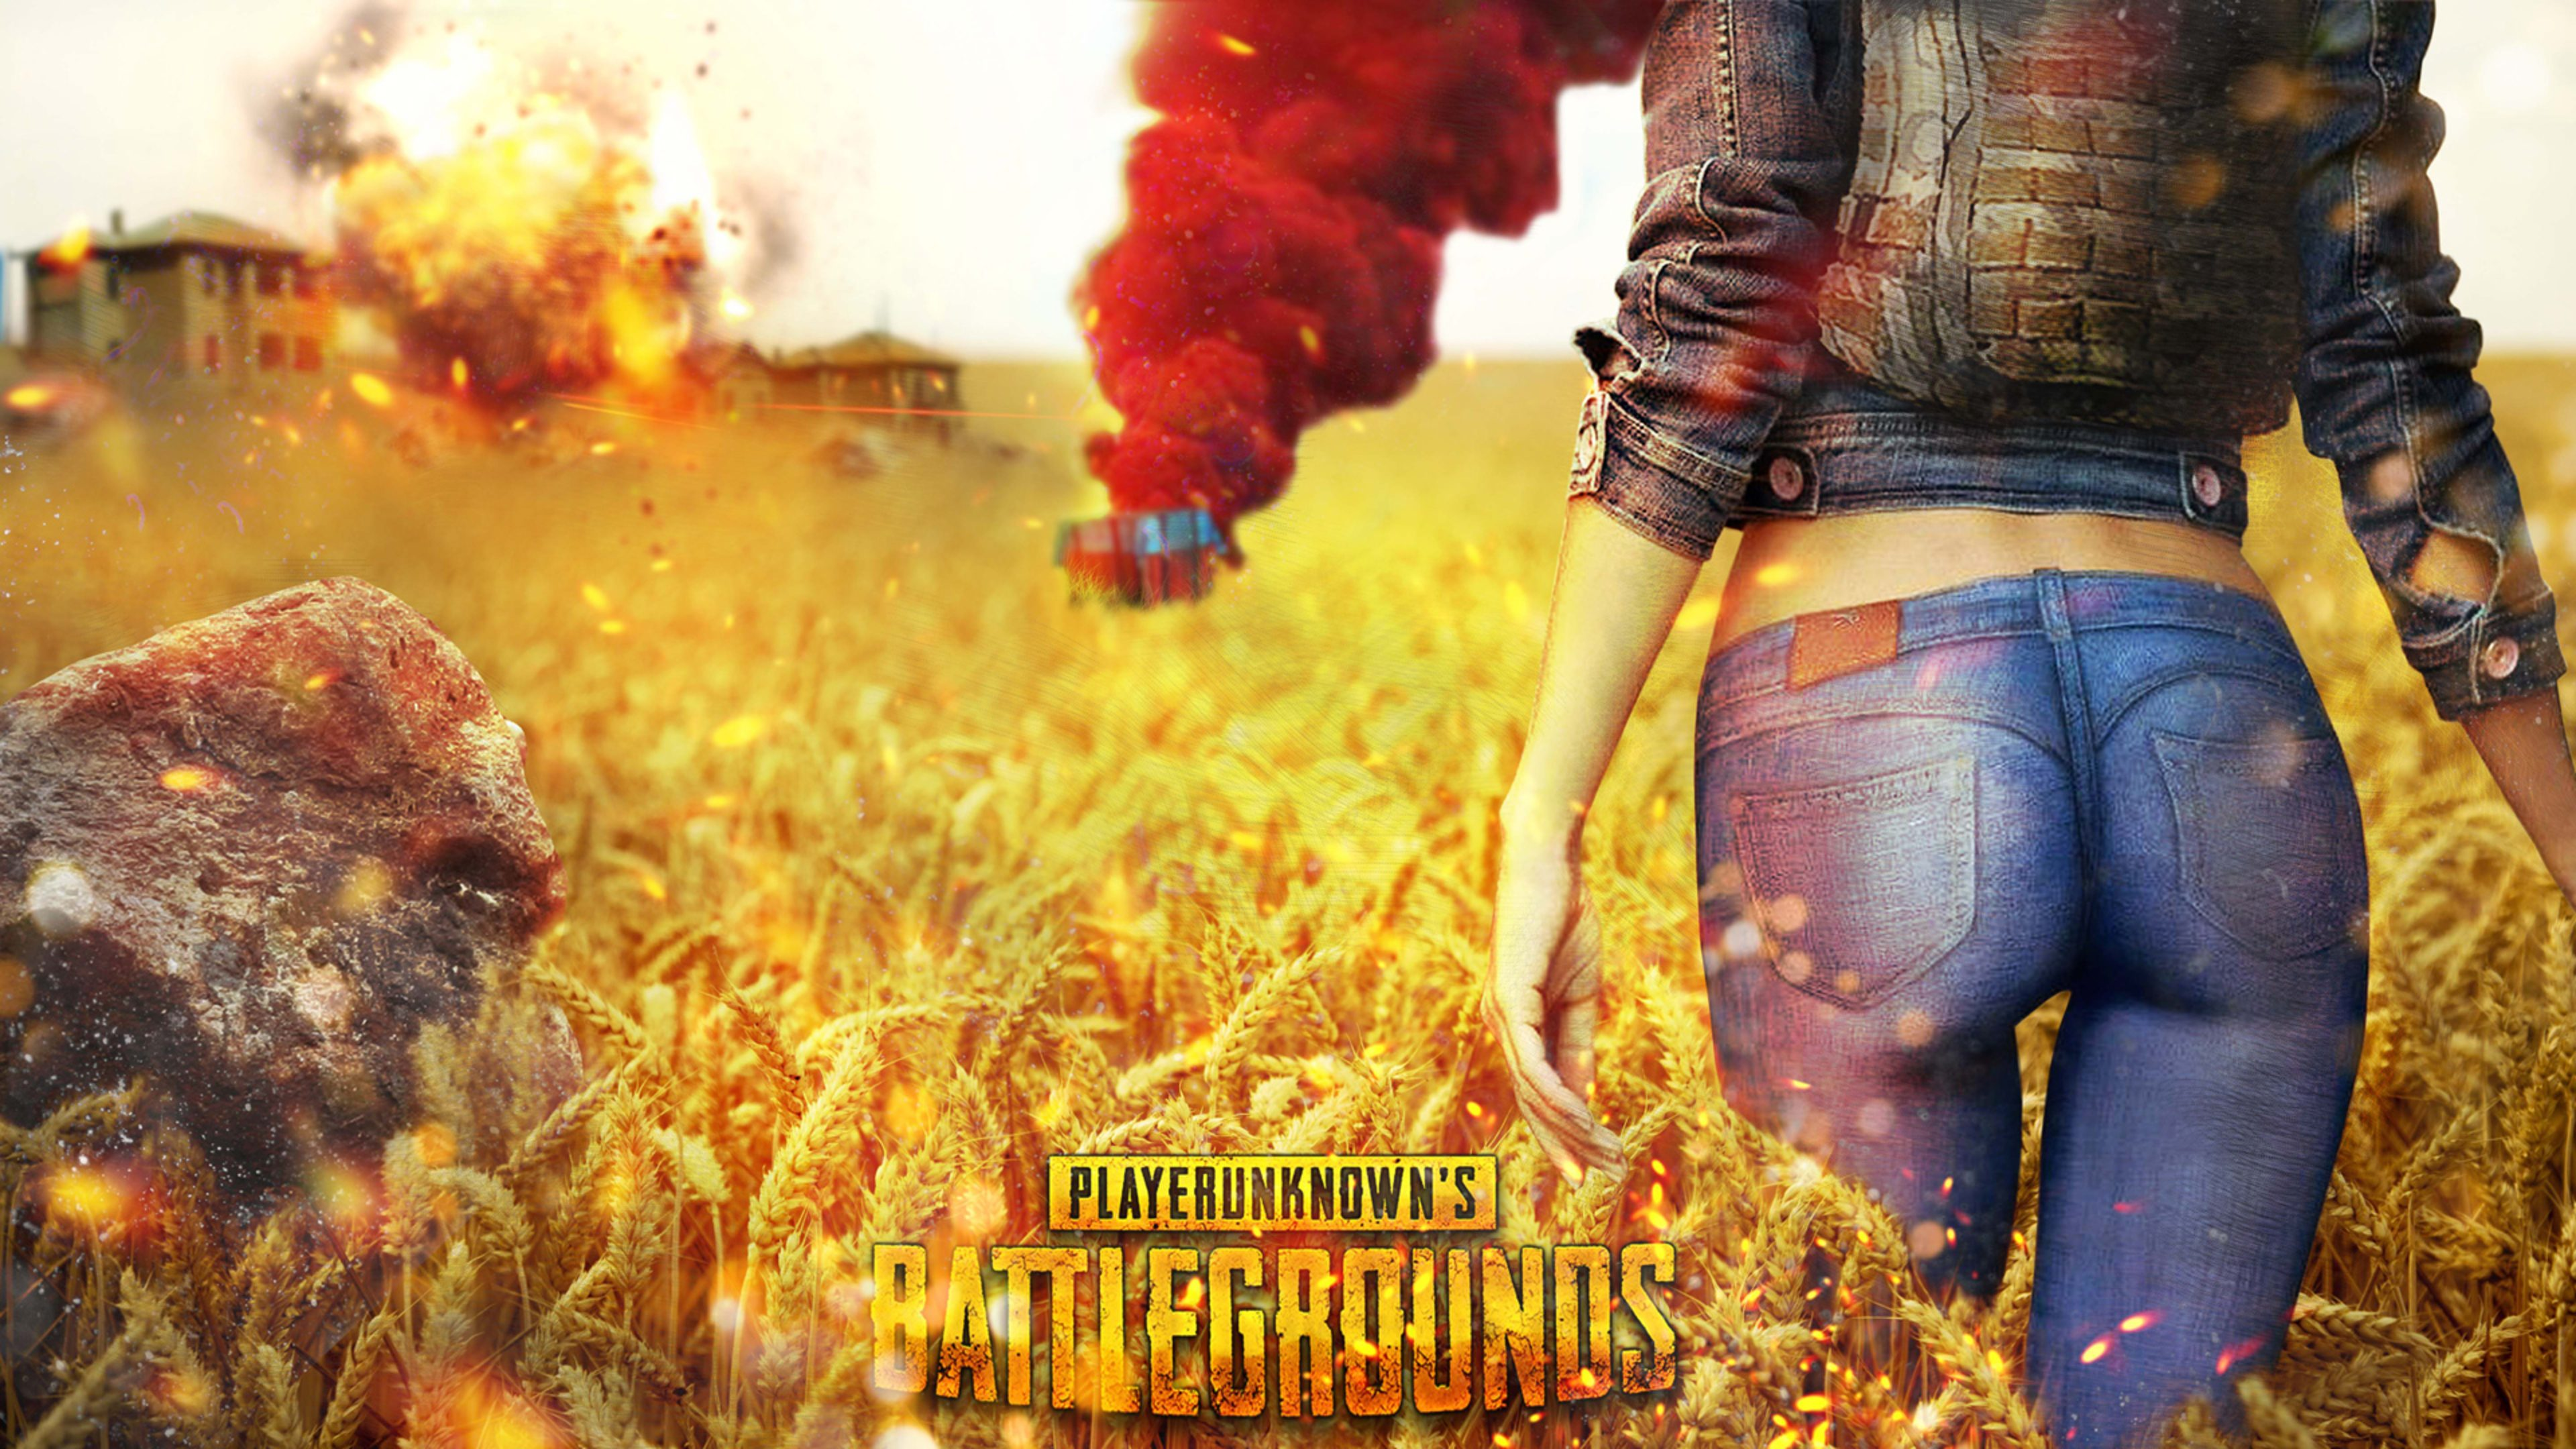 Download 1366x768 Pubg Mobile Characters Playerunknown S: Playerunknowns Battlegrounds PUBG Cover 4K Wallpaper